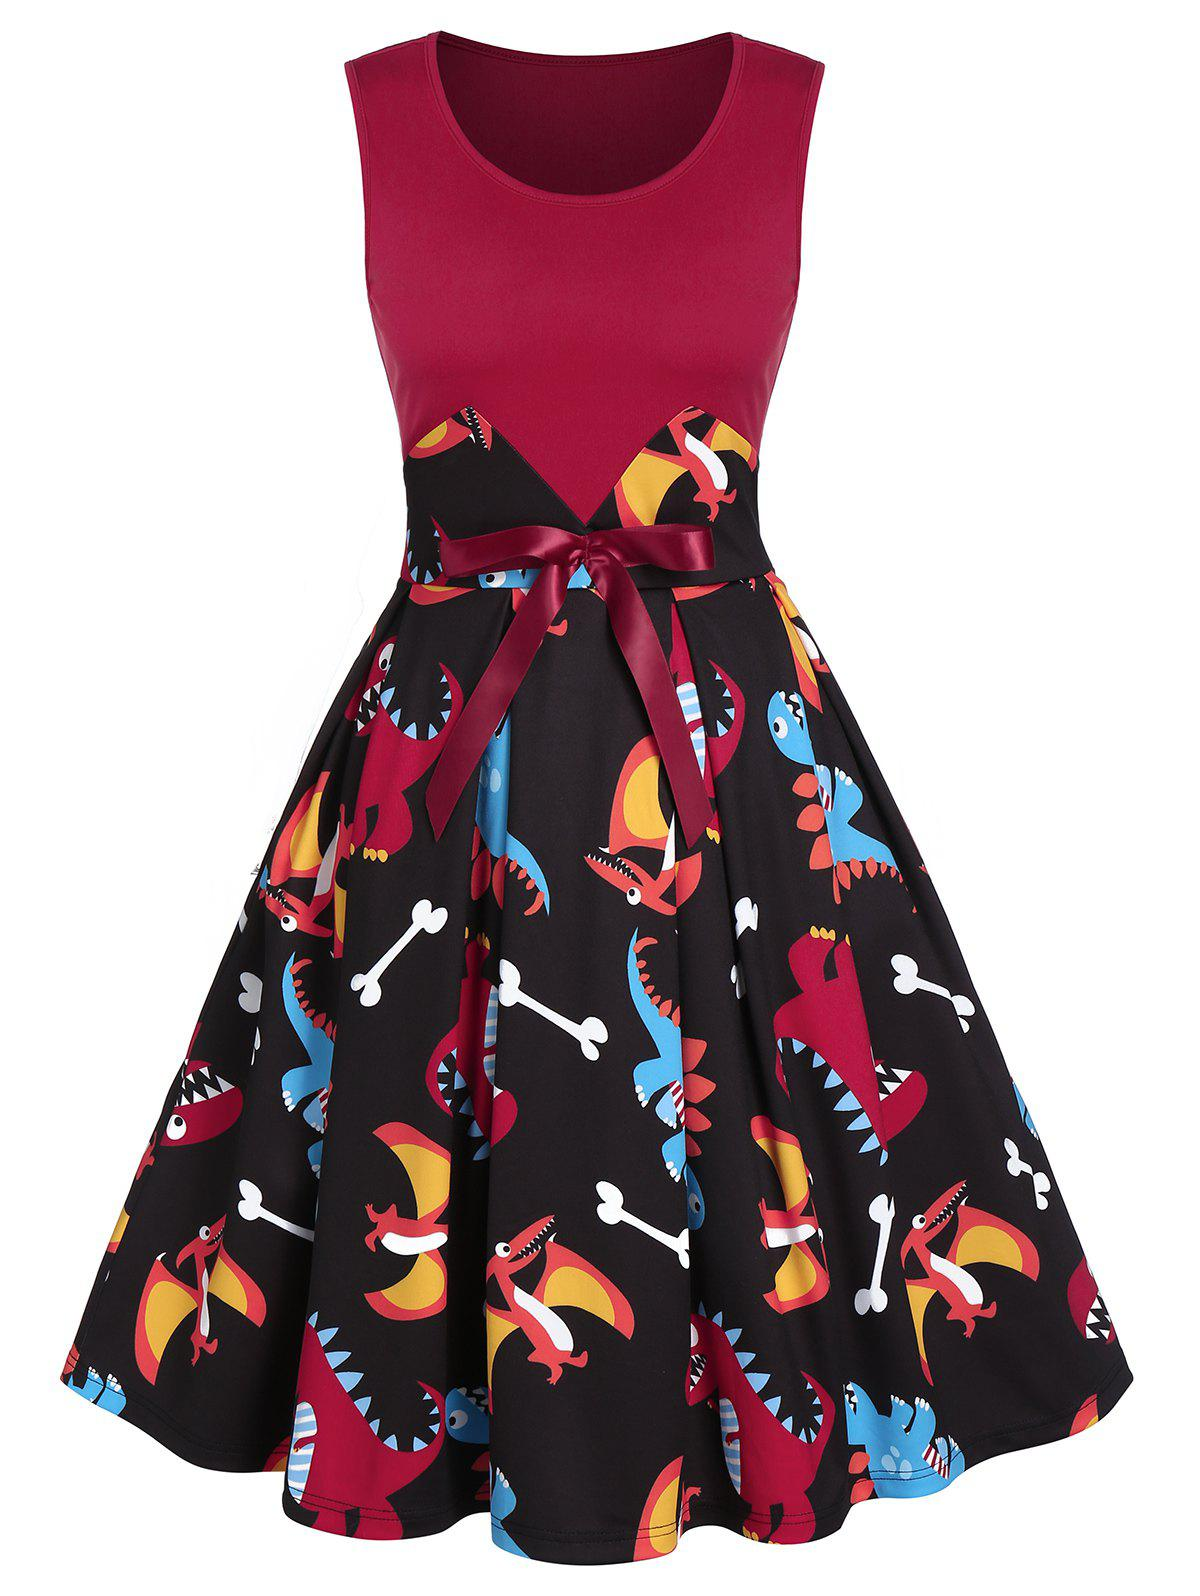 Latest Dinosaur Printed Bowknot Patchwork A Line Dress